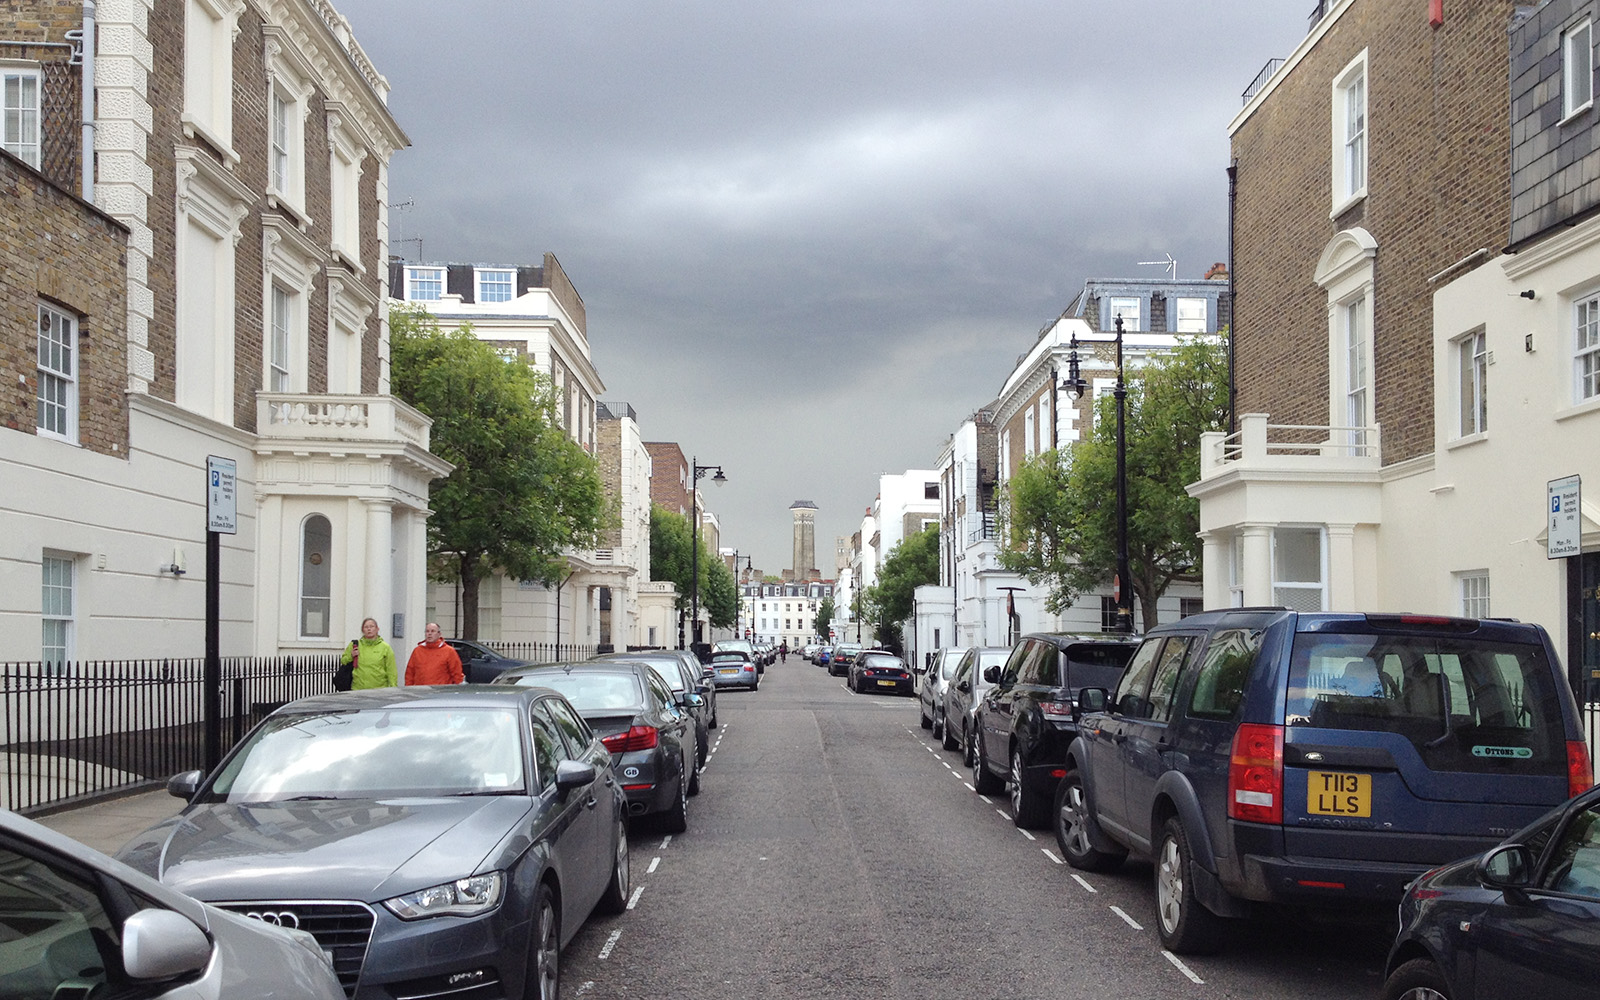 Panorama, Pimlico, May 2015